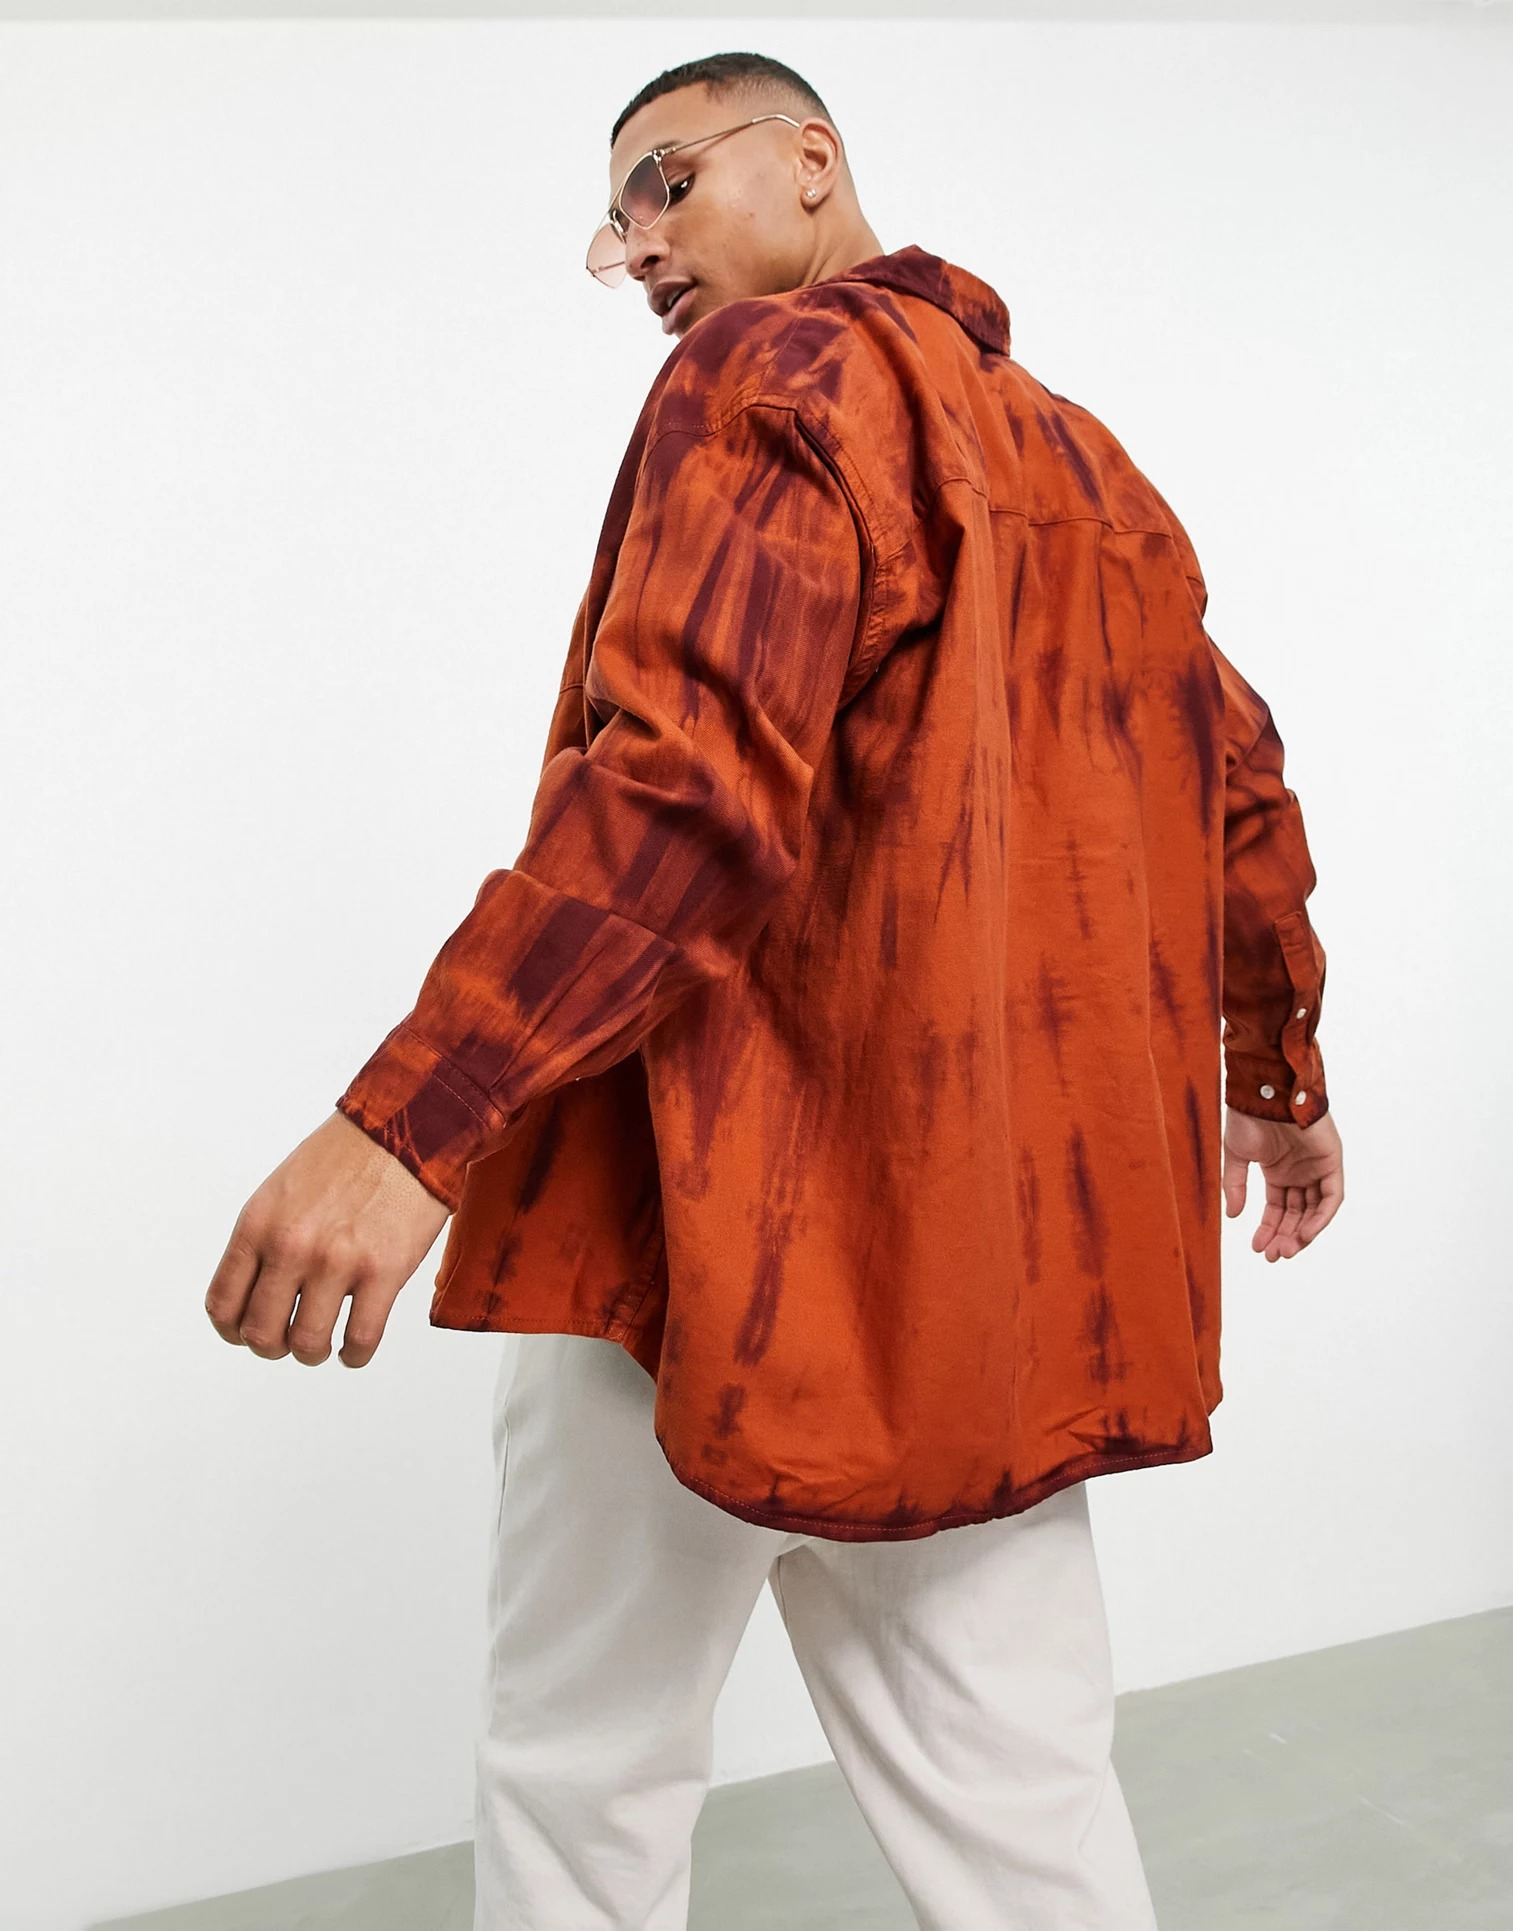 ASOS DESIGN Extreme Oversized Flannel Shirt in Tie-Dye